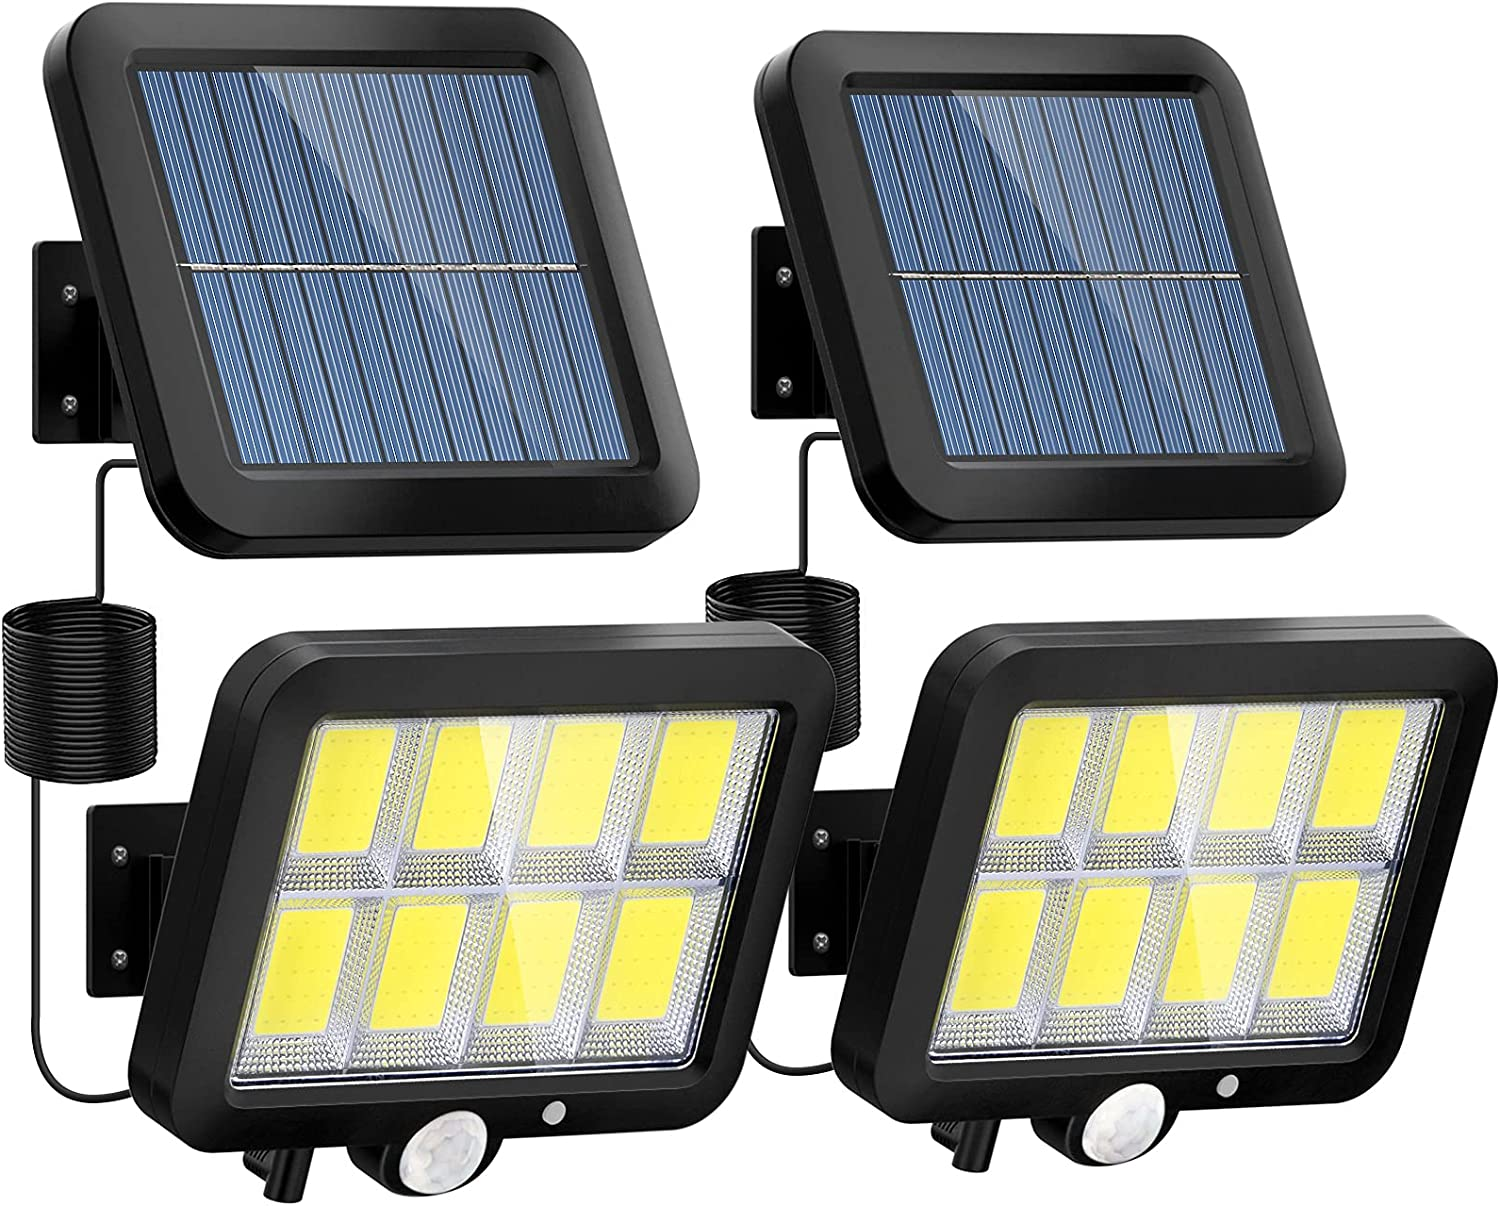 Solar Motion Sensor Light Outdoor, 320 Bright COB LED, 16.4Ft Cable, 3 Working Mode, Adjustable Solar Panel, Wired Solar Powered Security Flood Lights for Indoor Use, Wall, Yard, Garage, Garden(2 Set)